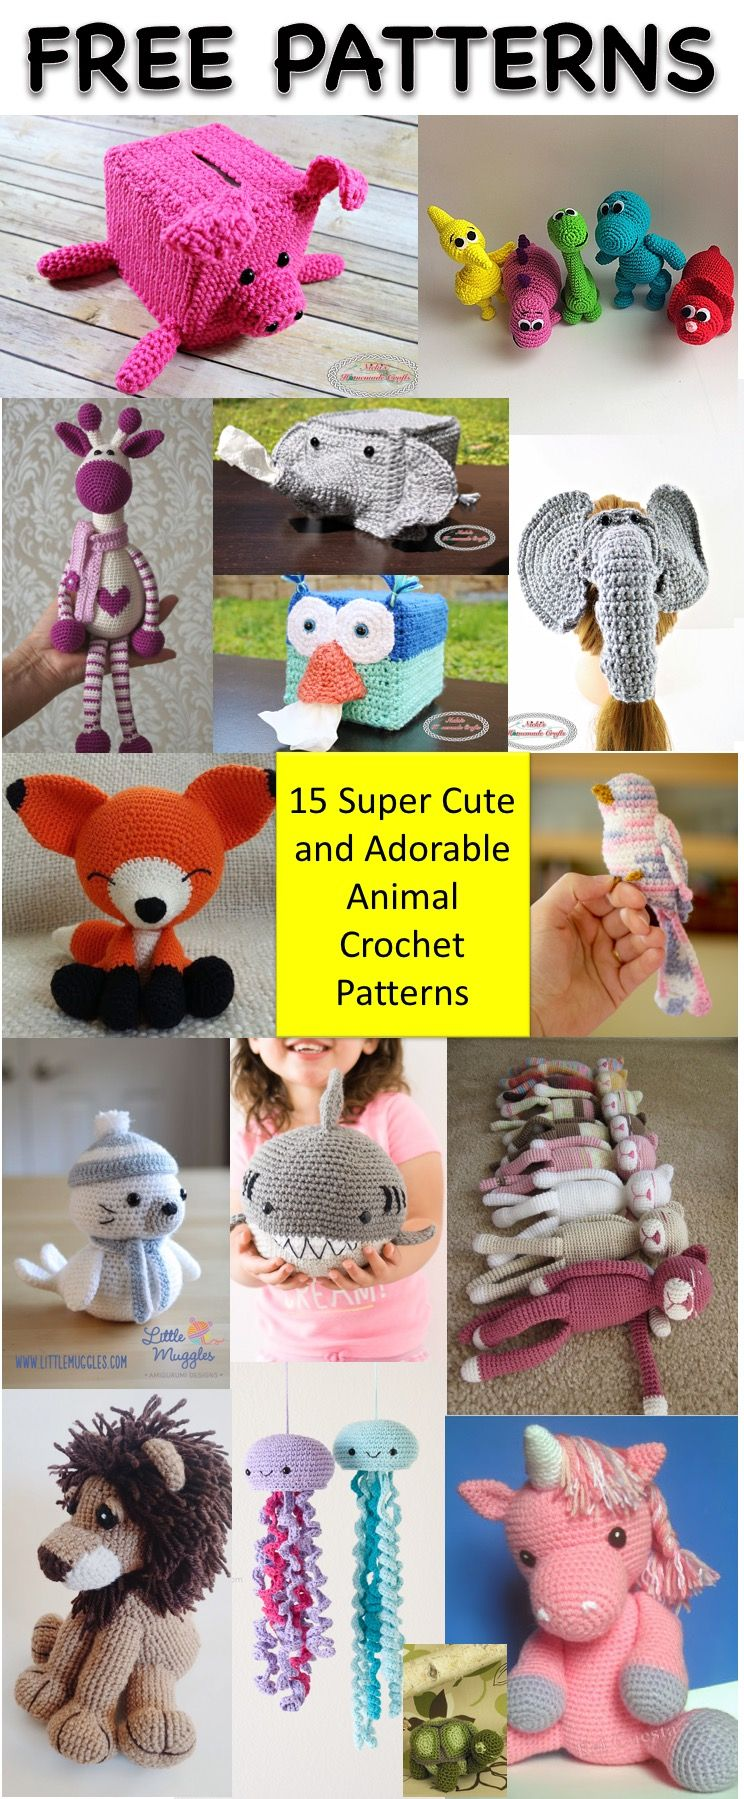 15 Most Popular and Adorable Free Animal Crochet Patterns ...